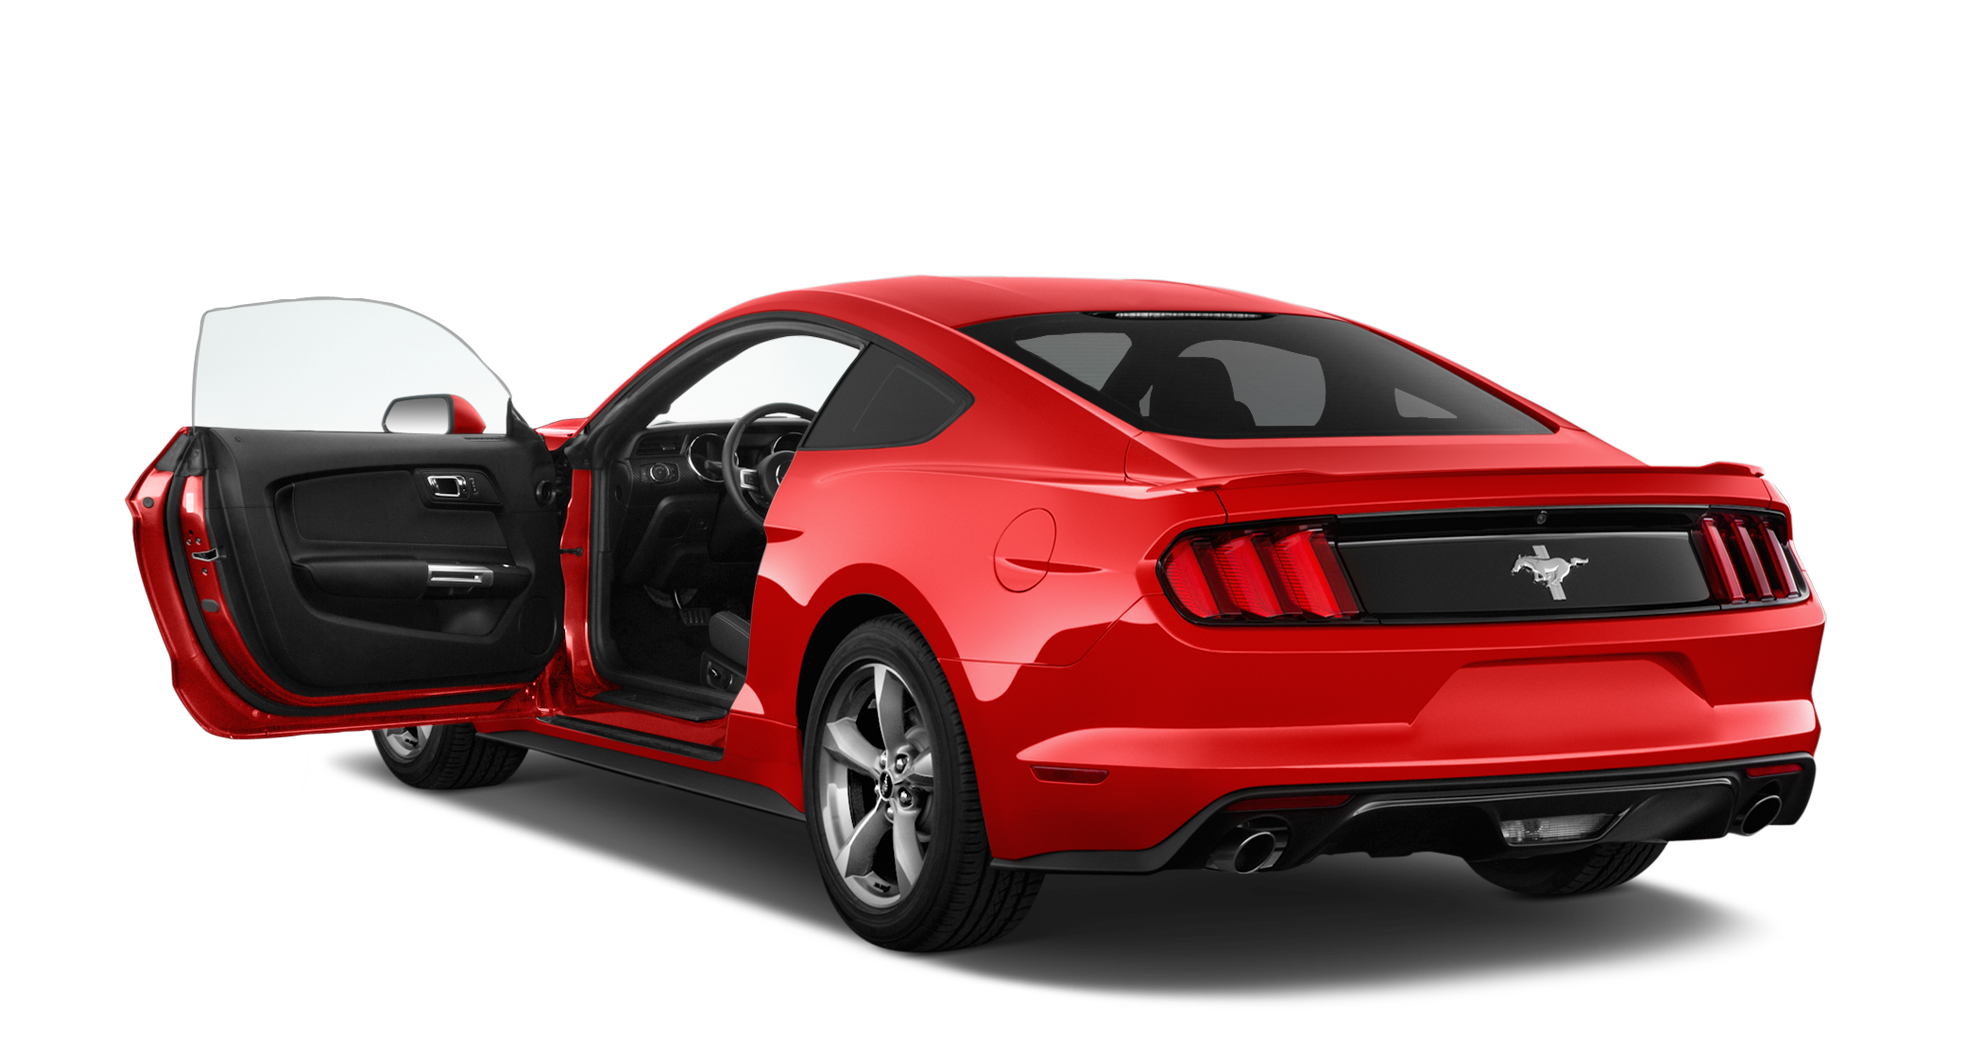 Sticker Remixit Png Mustang Ford Car Hd Highresolution